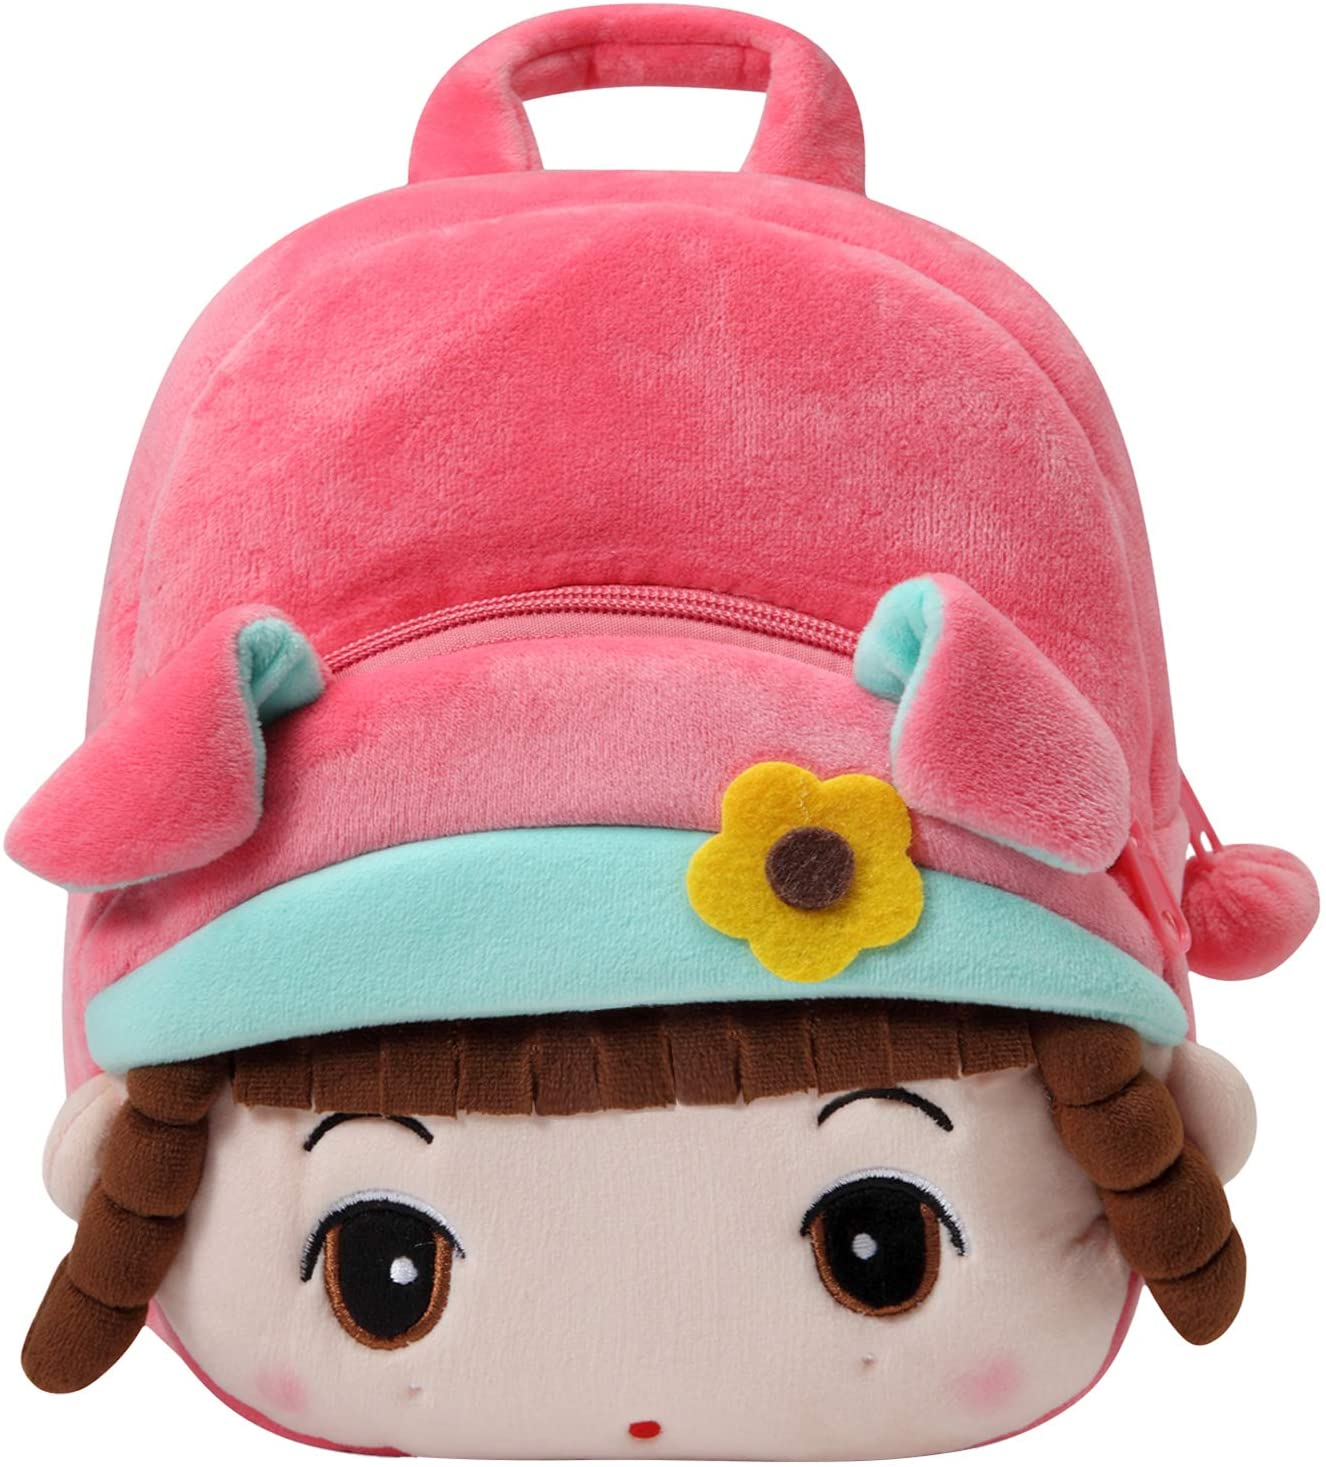 Toddler Backpack for Girls, KASQO Small Cute 3D Mini Kids Soft Plush Backpack for Baby Pink Girl